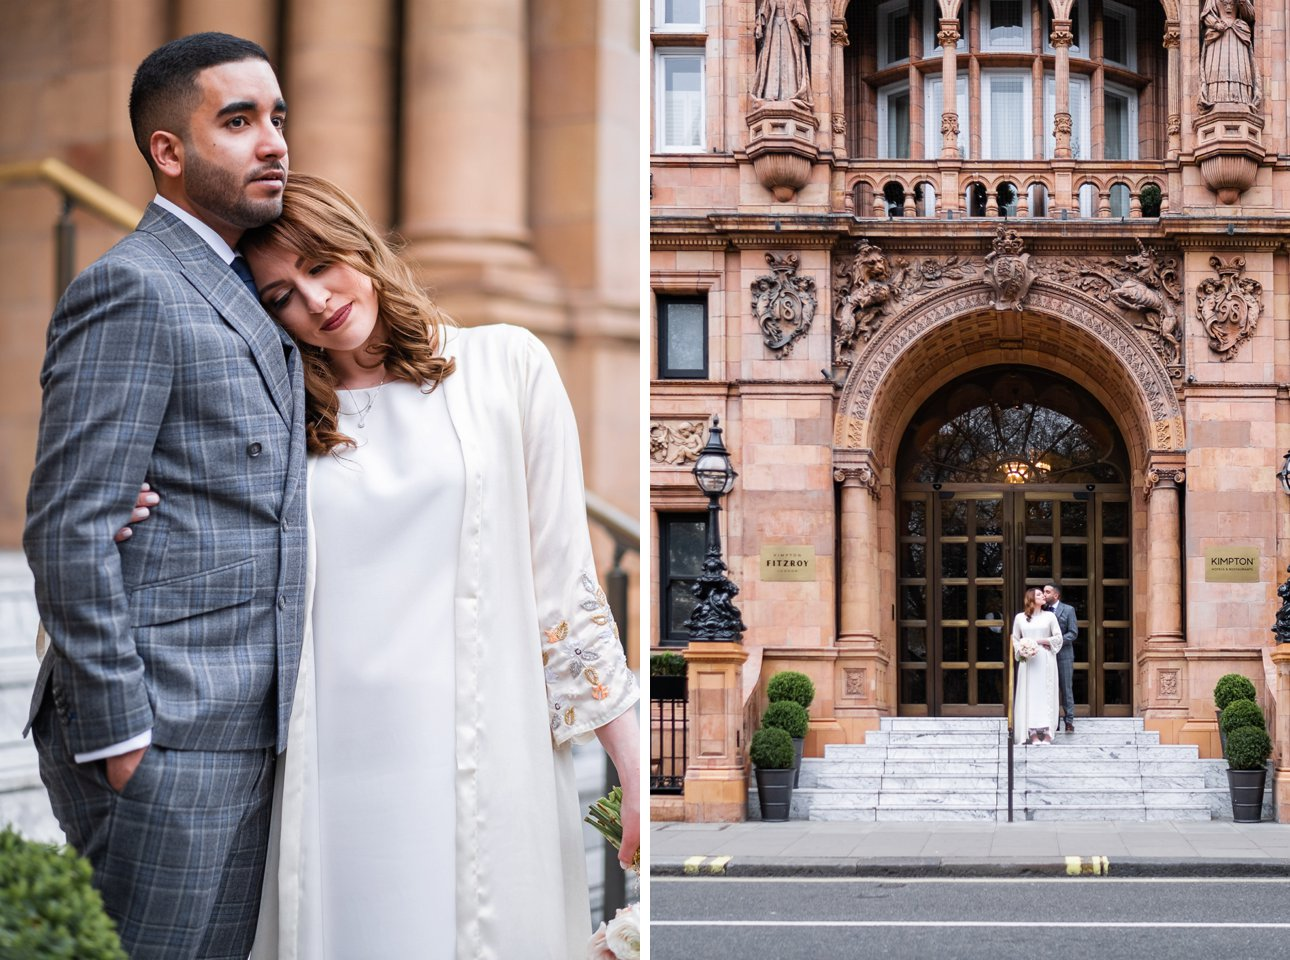 A bride leans her head on her groom's chest and the couple pose outside the Kimpton Fitzroy London hotel on Russell Square.